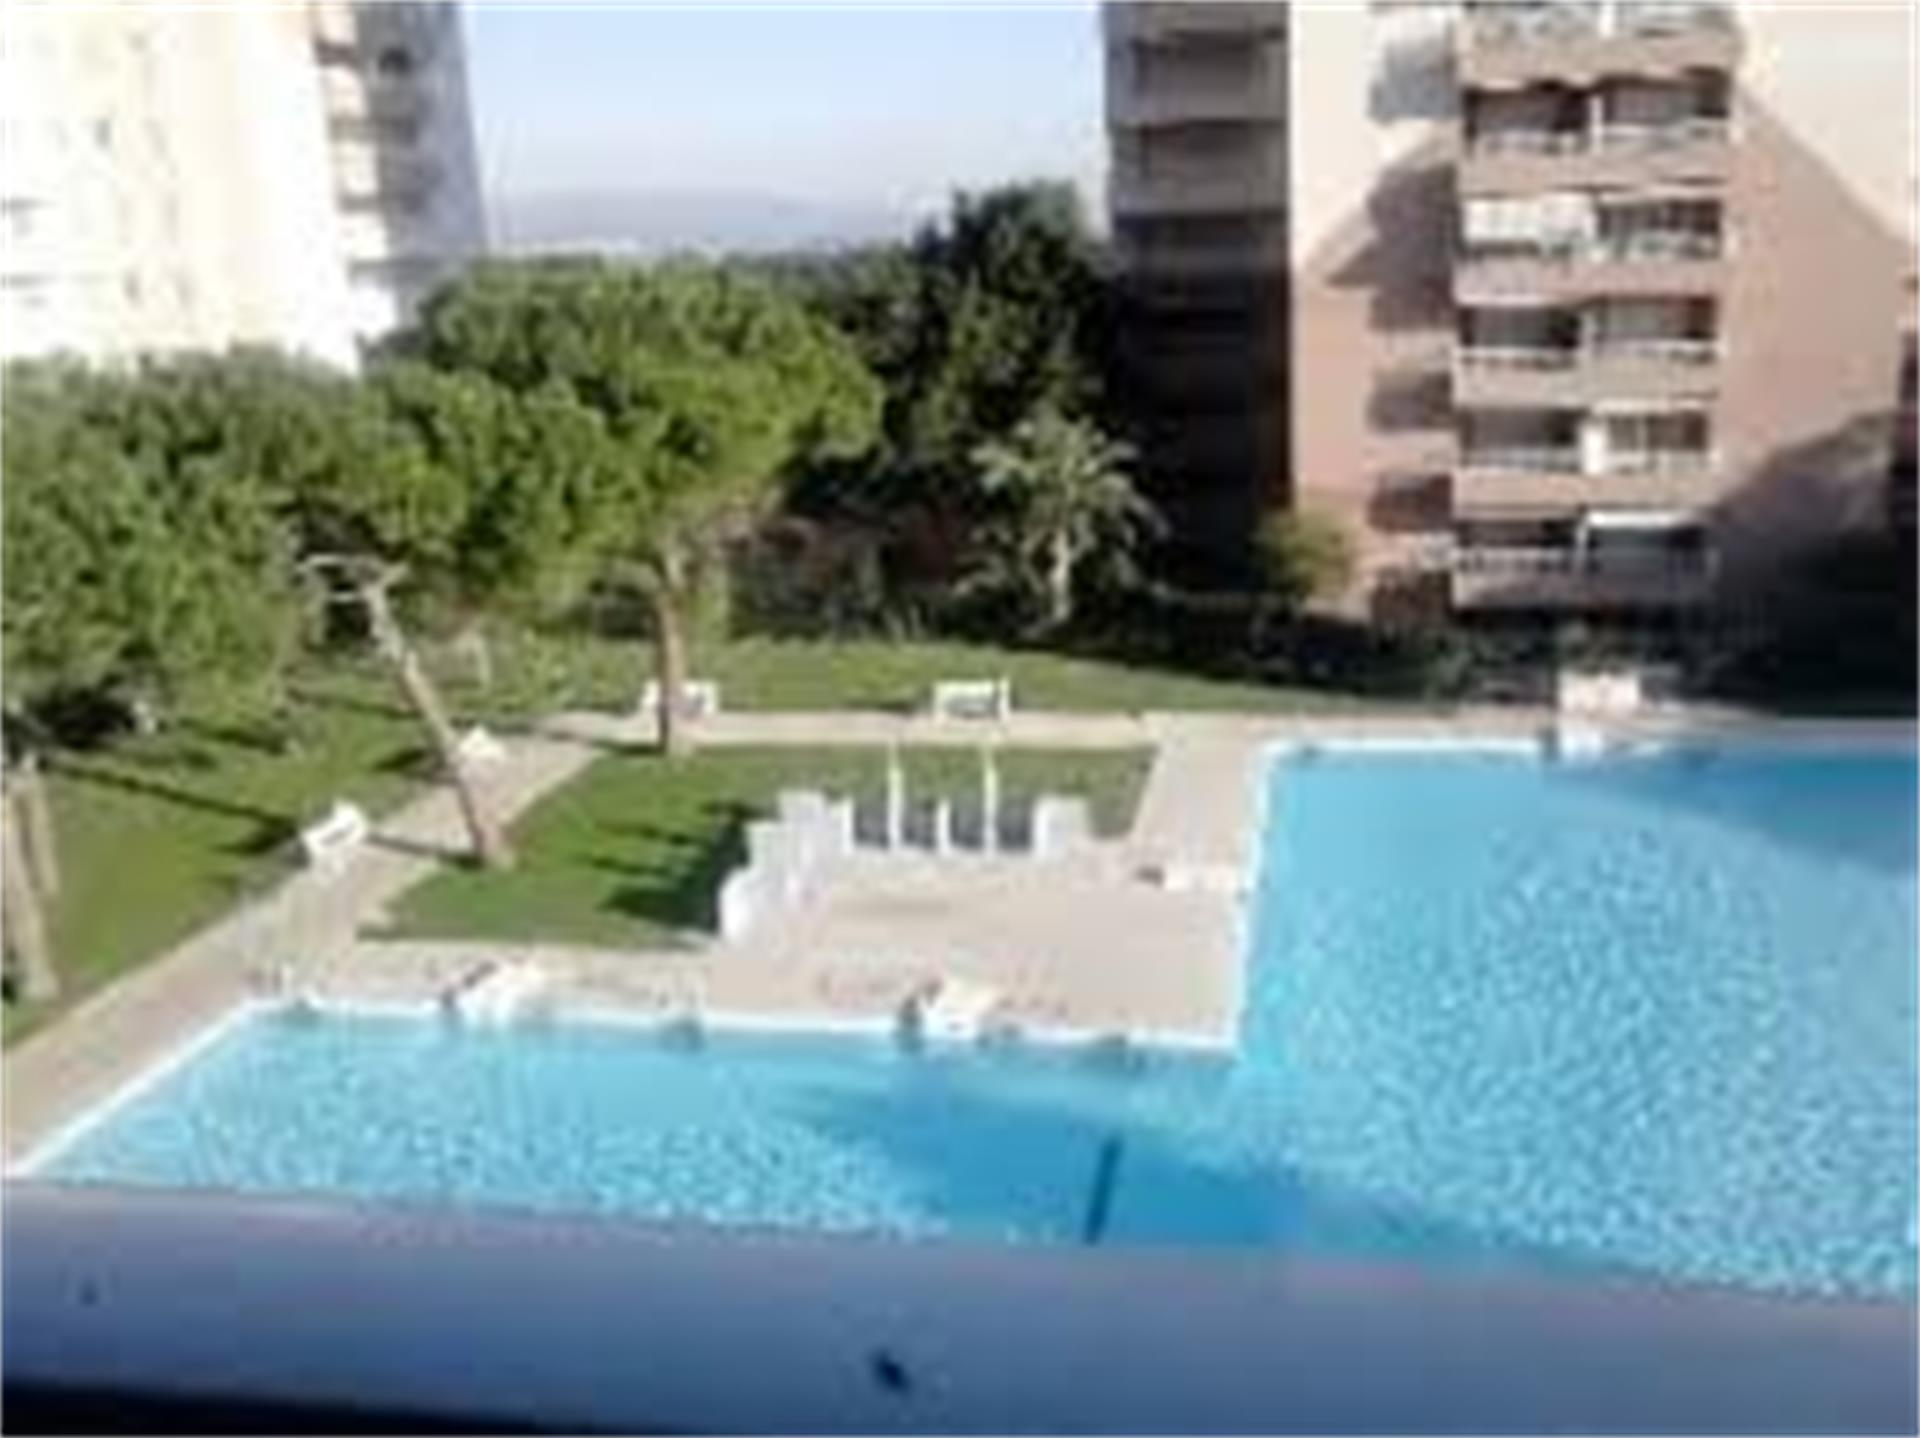 Rent Apartment  Calle arroz y tartana. Canet d'en berenguer / calle arroz y tartana